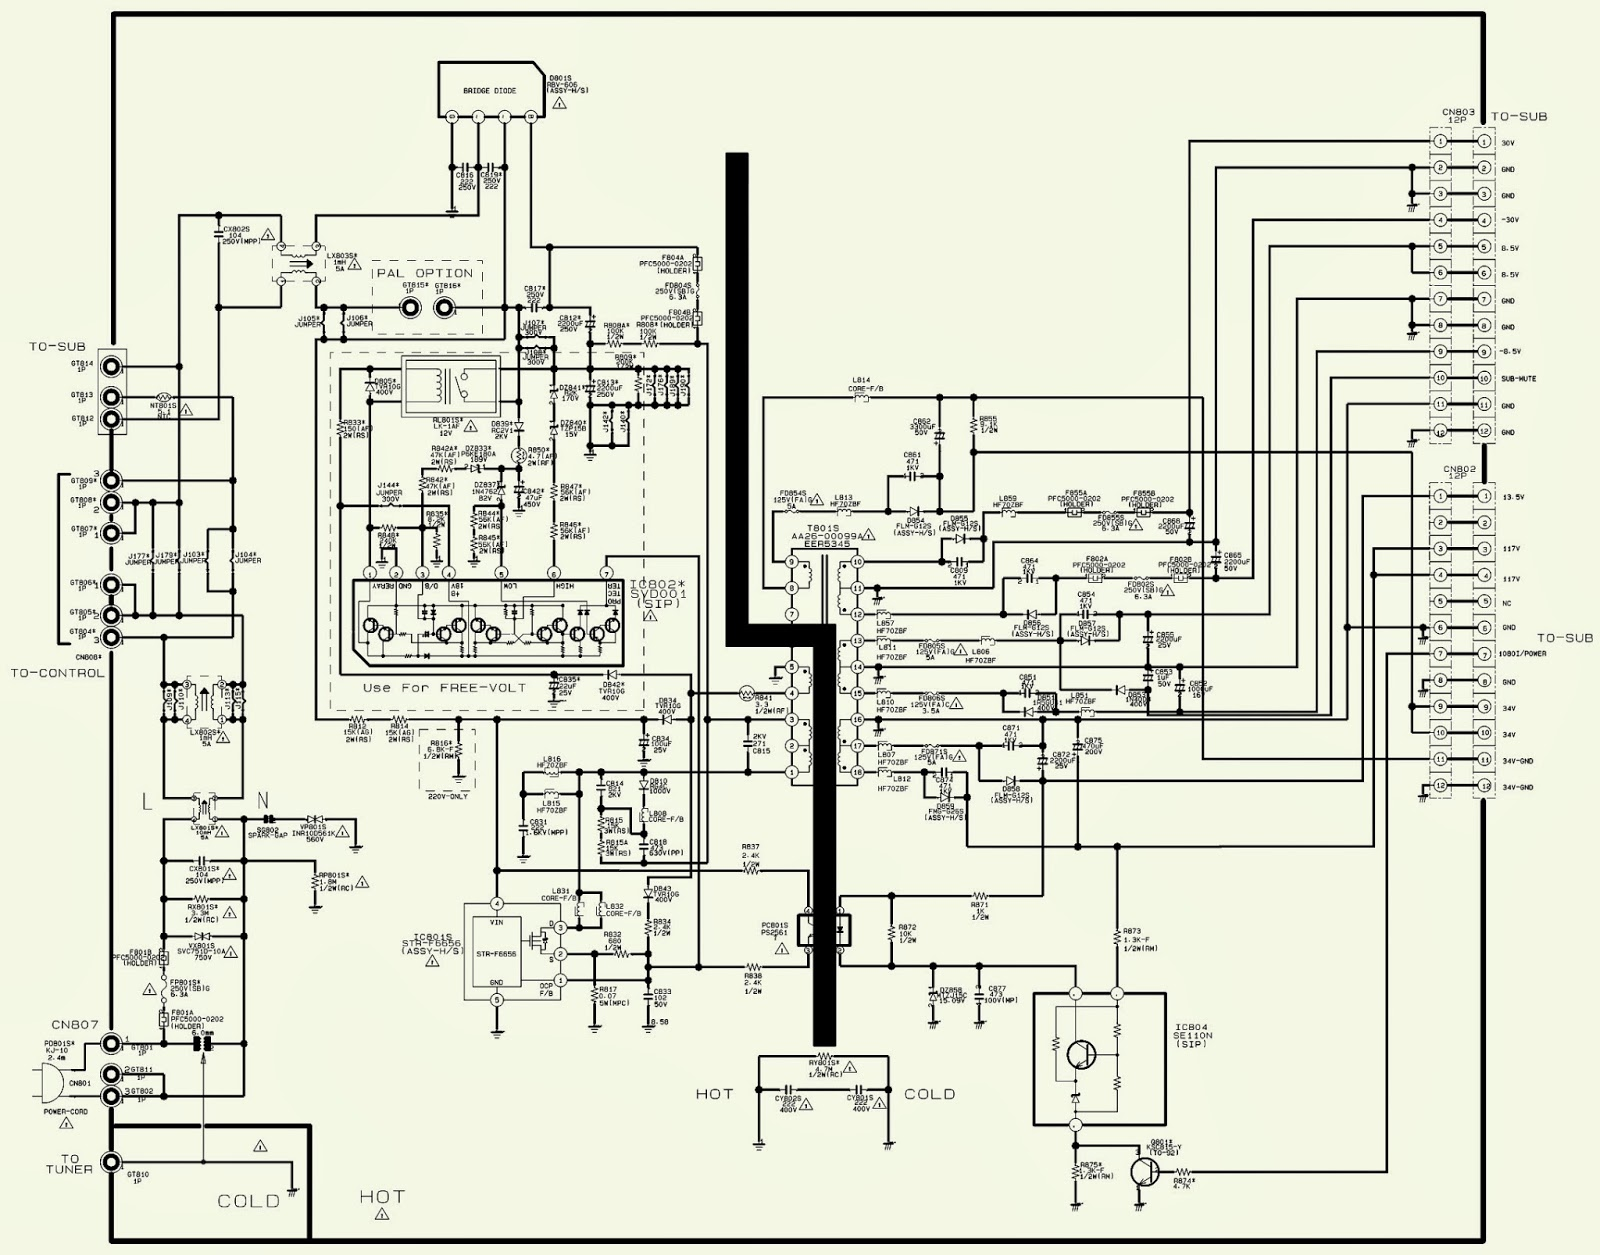 Tv Power Schematic Auto Electrical Wiring Diagram Crt Electronic Repair No High Voltage Toshiba 20as24 Samsung Hcl Hd4715w Projection